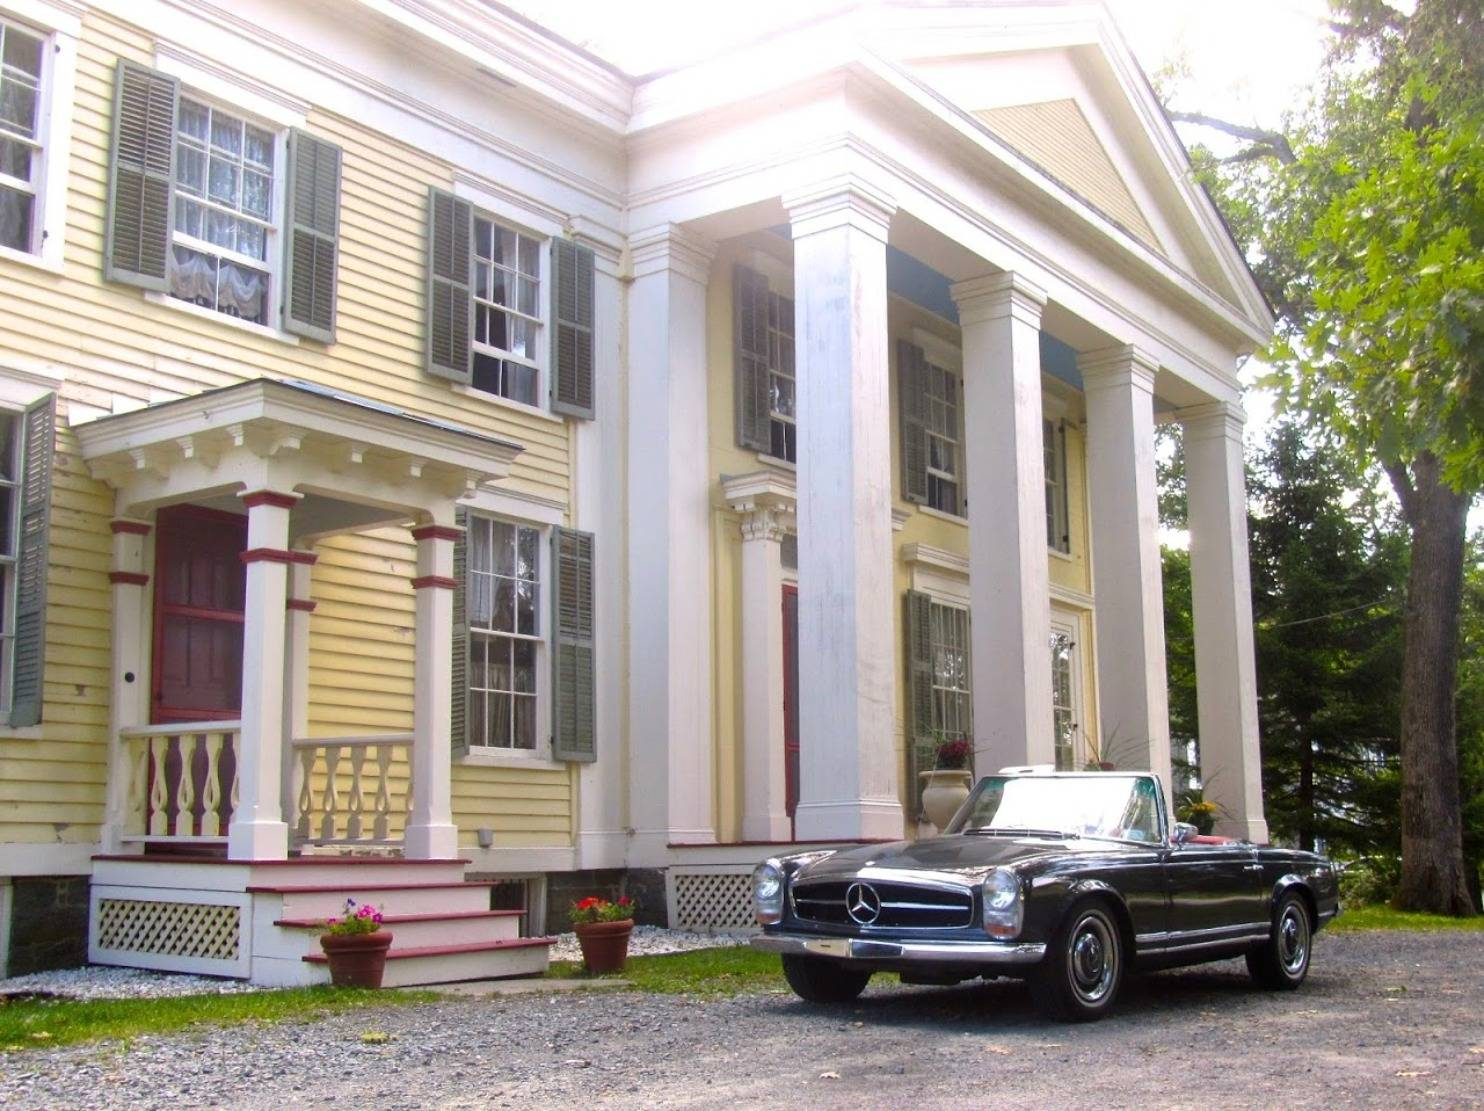 Waterford Bed and Breakfast